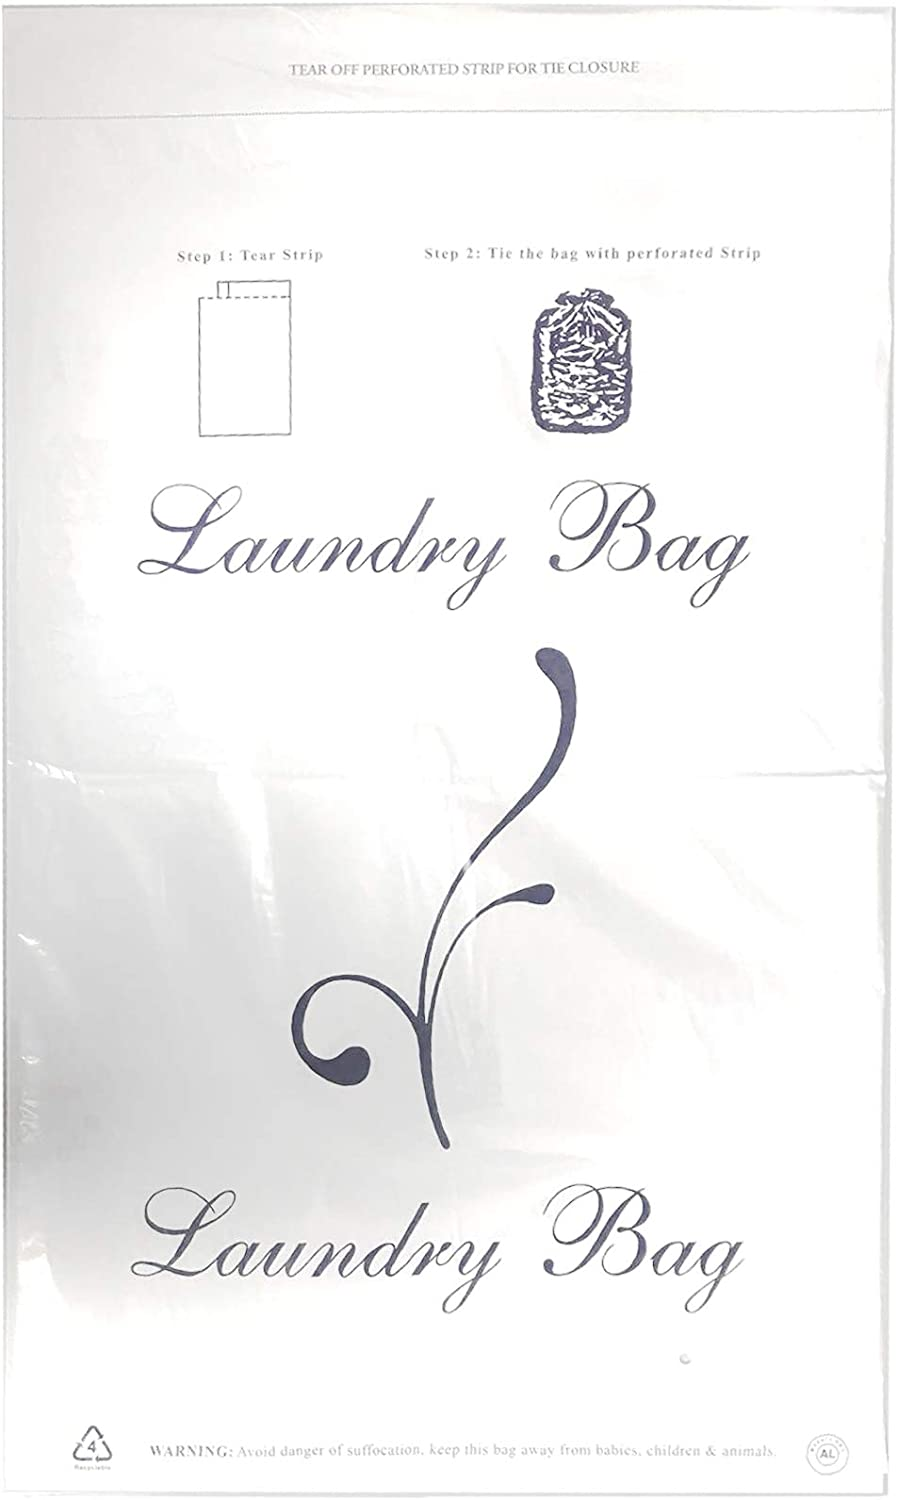 Hotel Laundry Bags with Tie Closure - Pack of 50